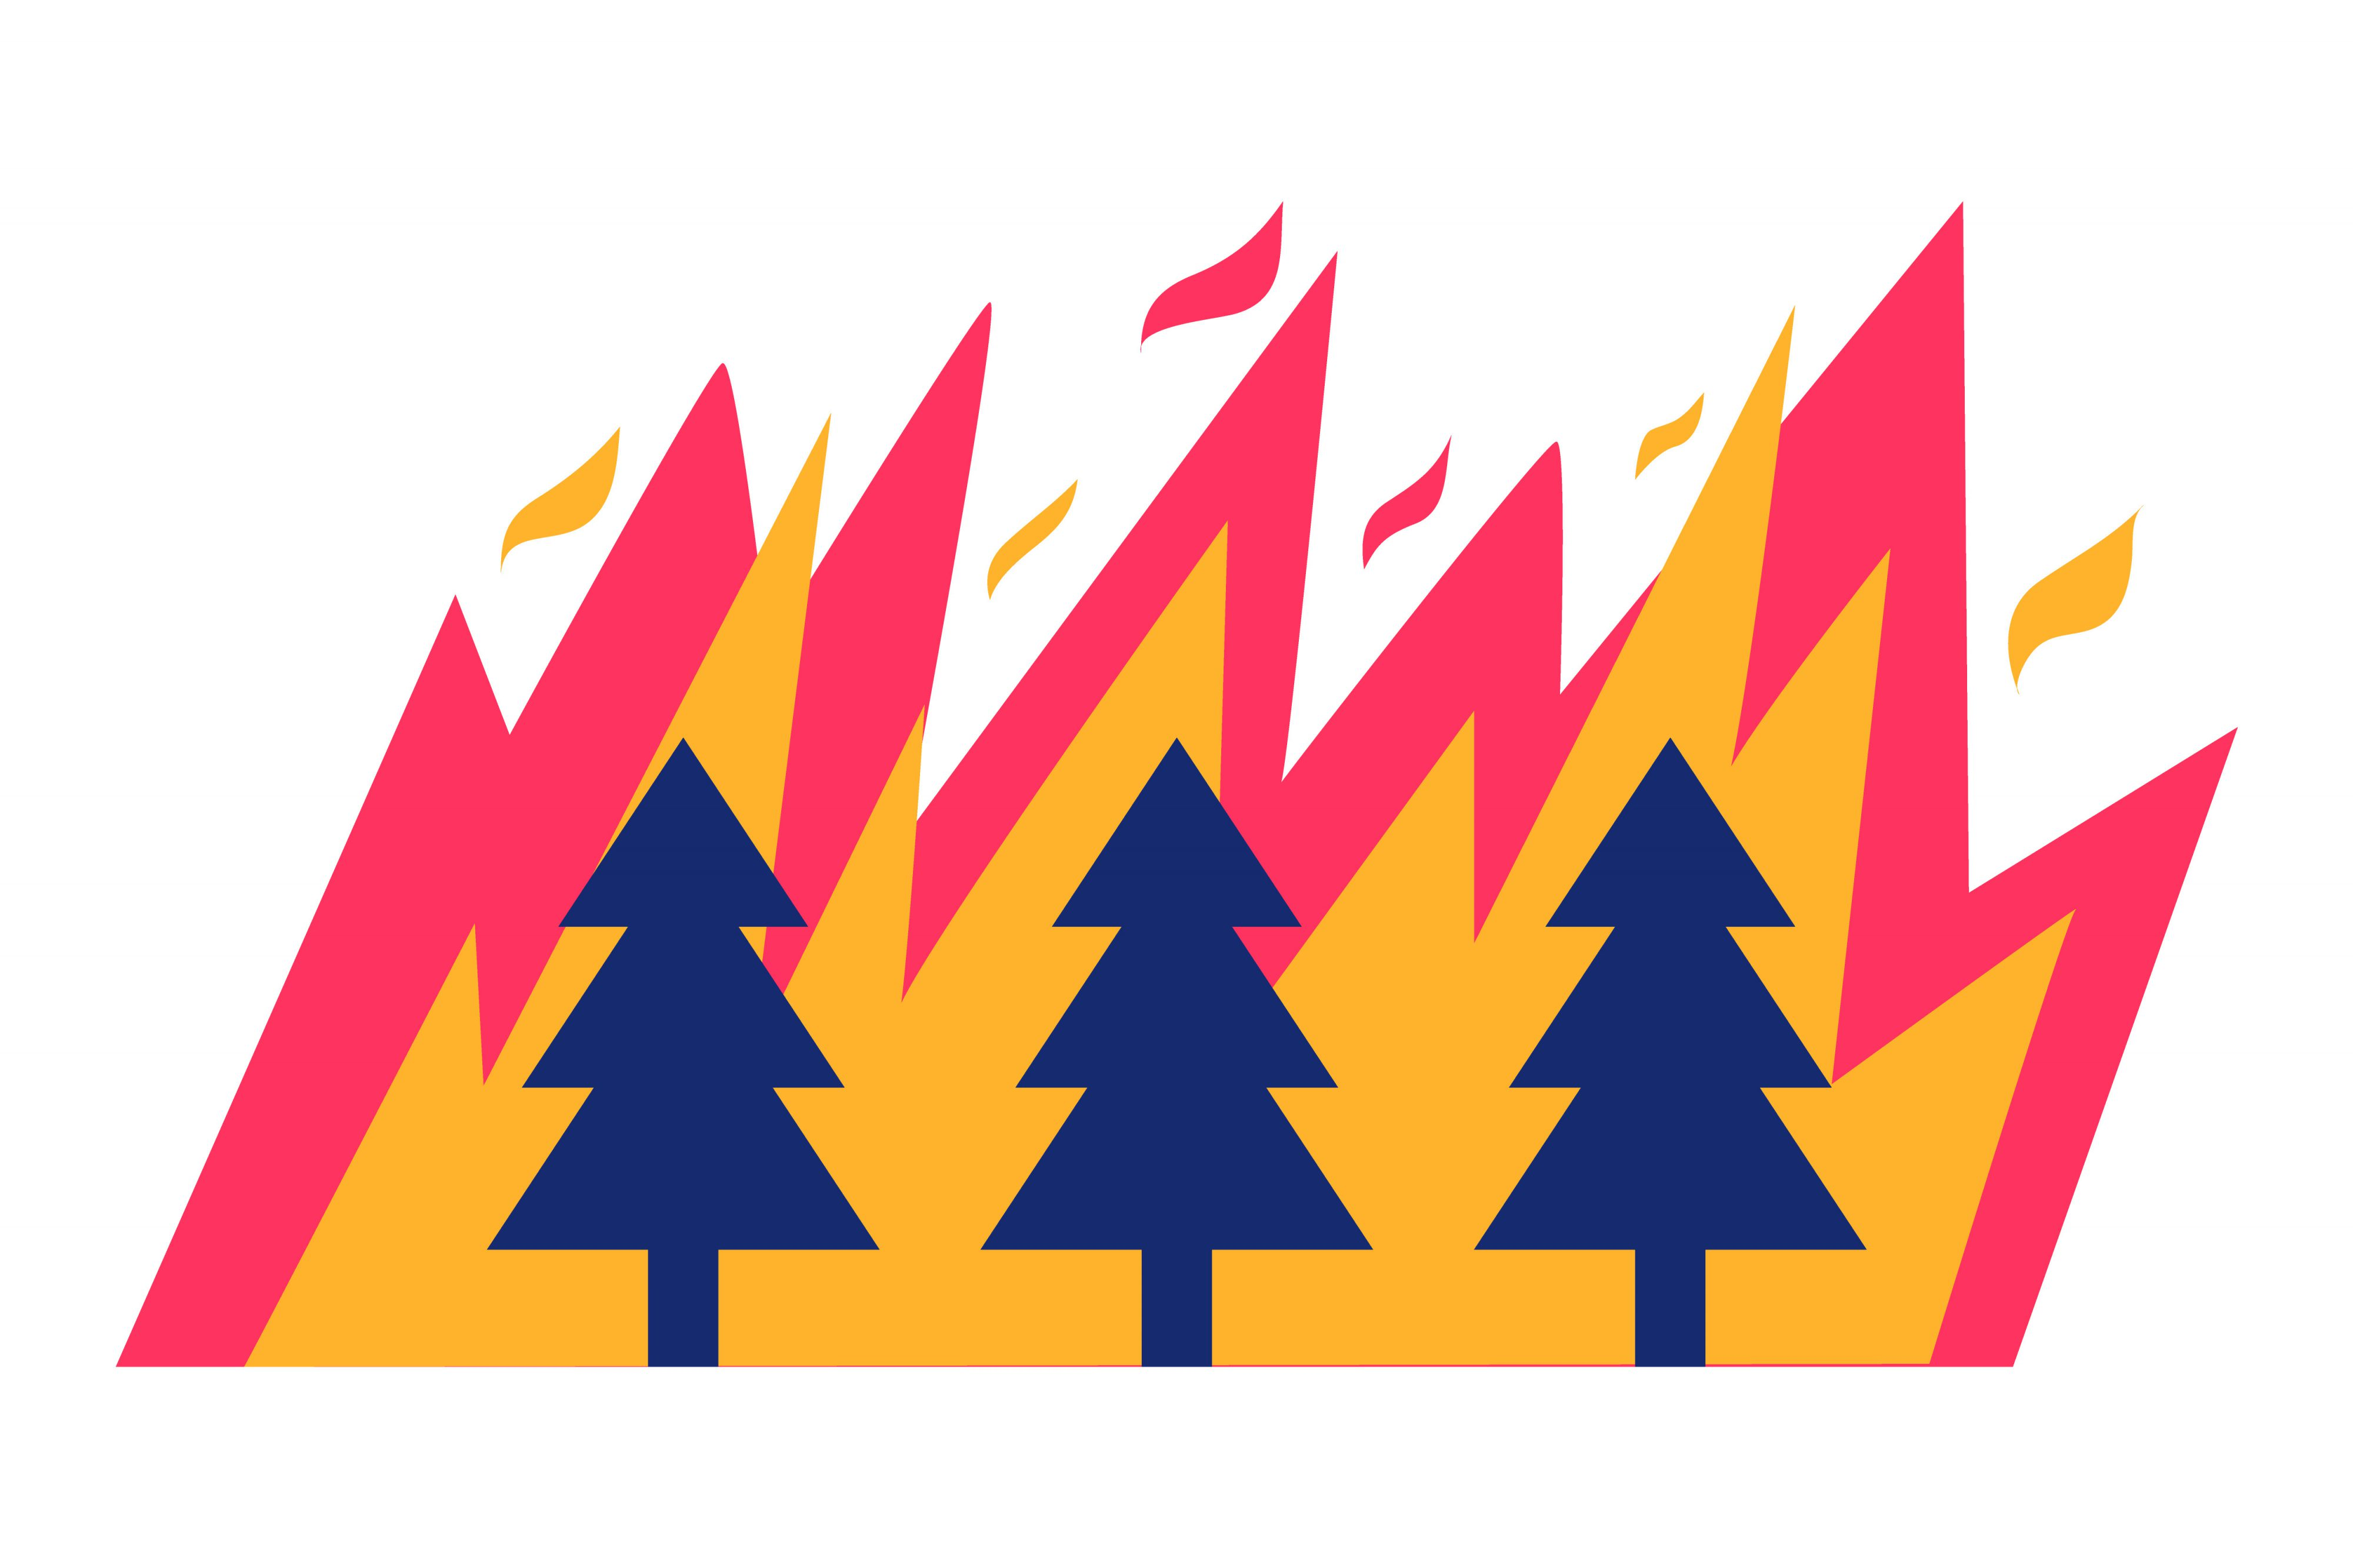 Image 1 e1598625435955 - Landscaping Tips for Fire Safety